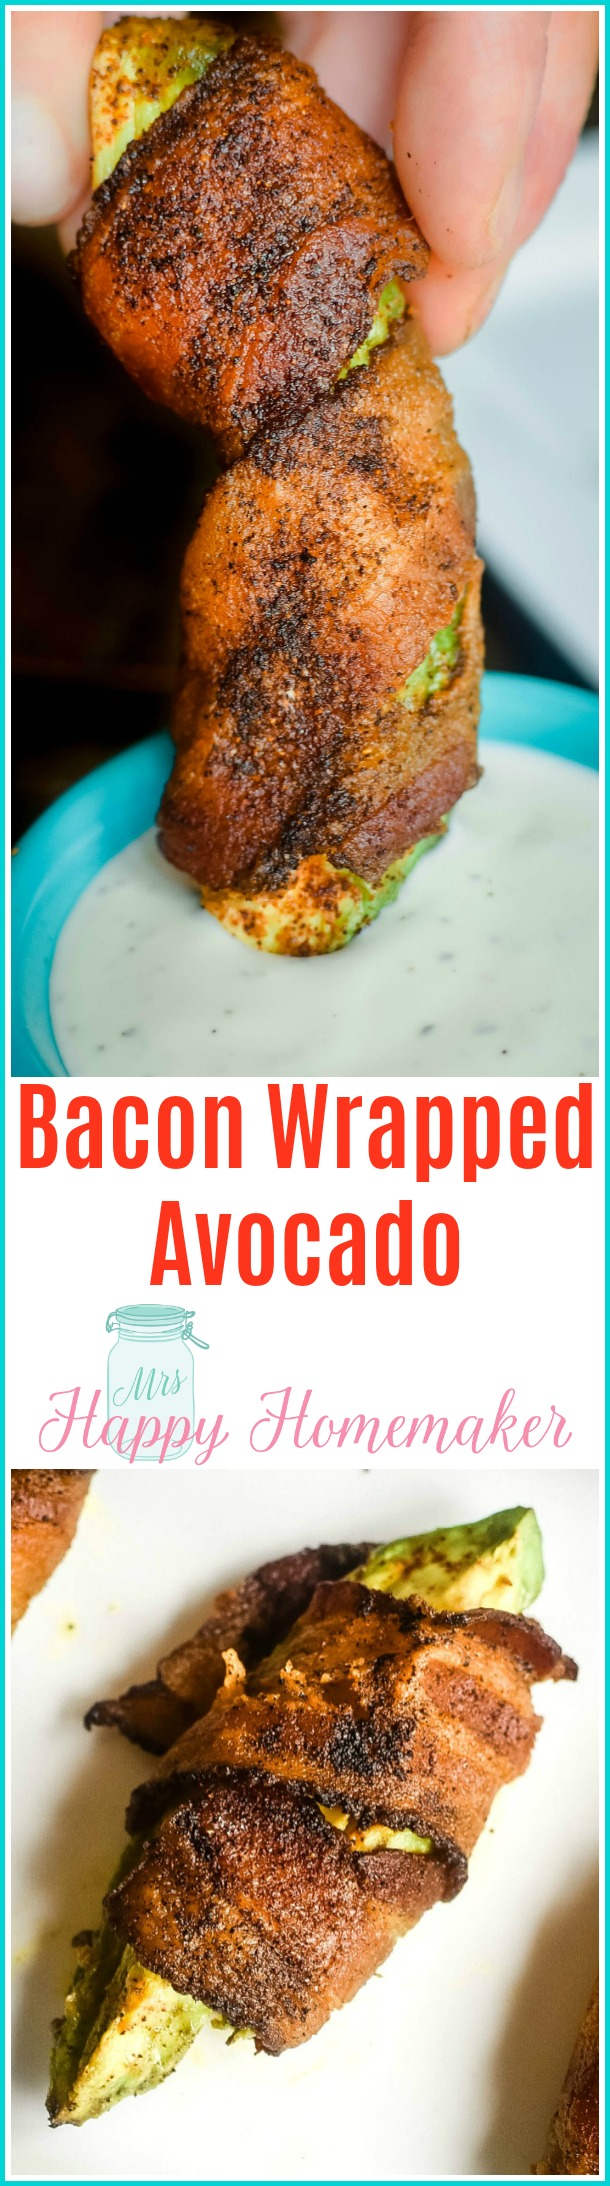 Bacon Wrapped Avocado | Whole30, Paleo friendly | MrsHappyHomemaker.com @MrsHappyHomemaker